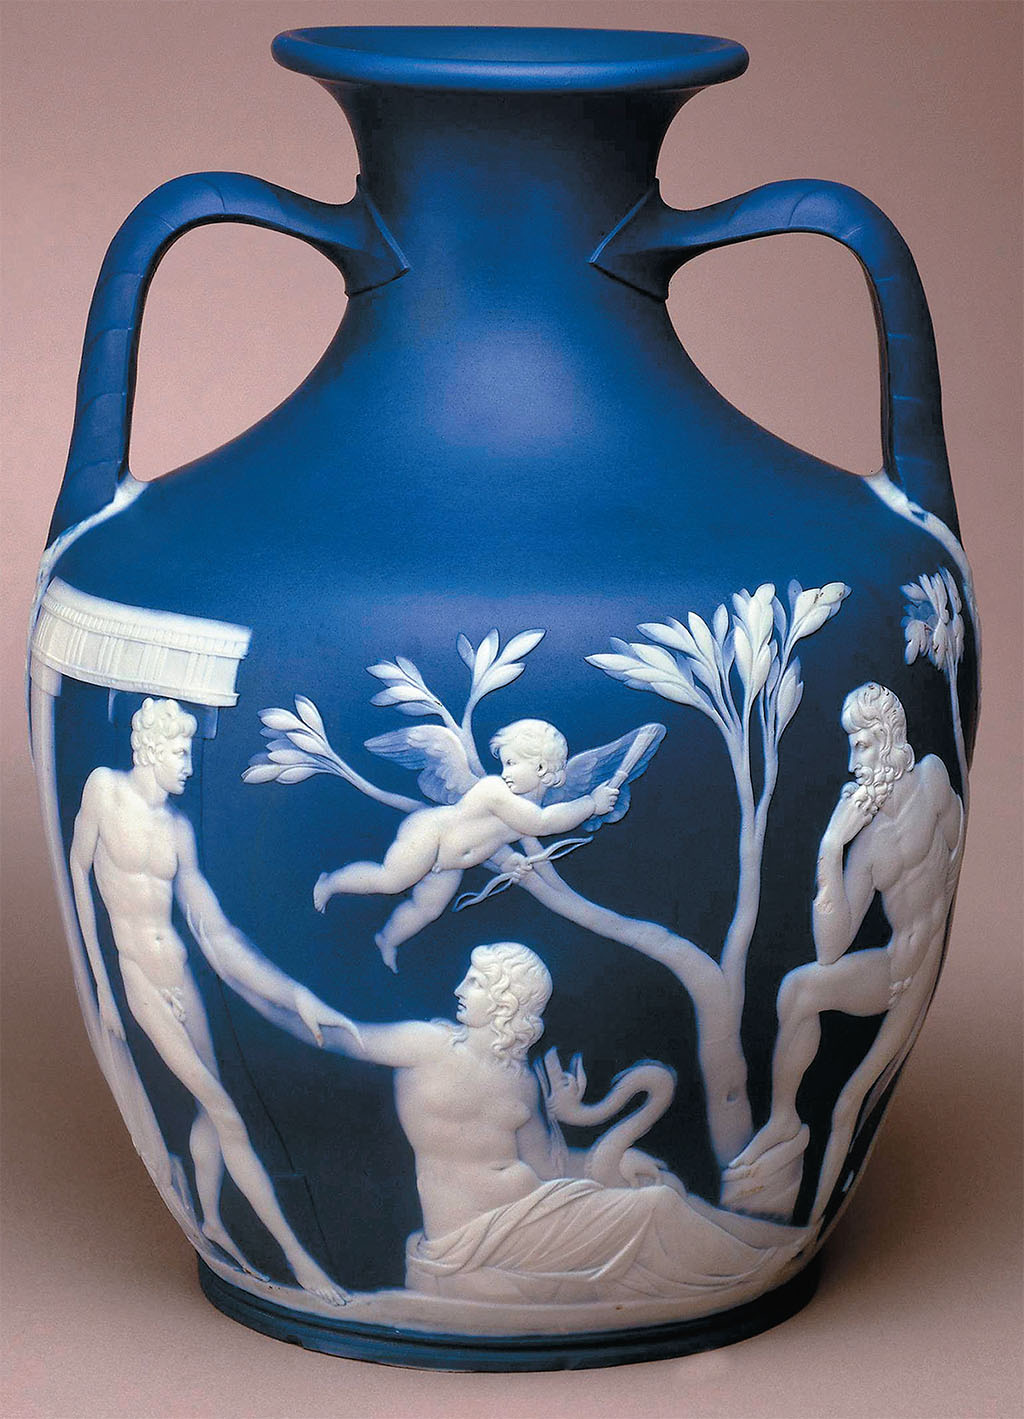 The potteries of staffordshire british heritage travel the wedgwood museum trust crown emblem joe sutliff reviewsmspy